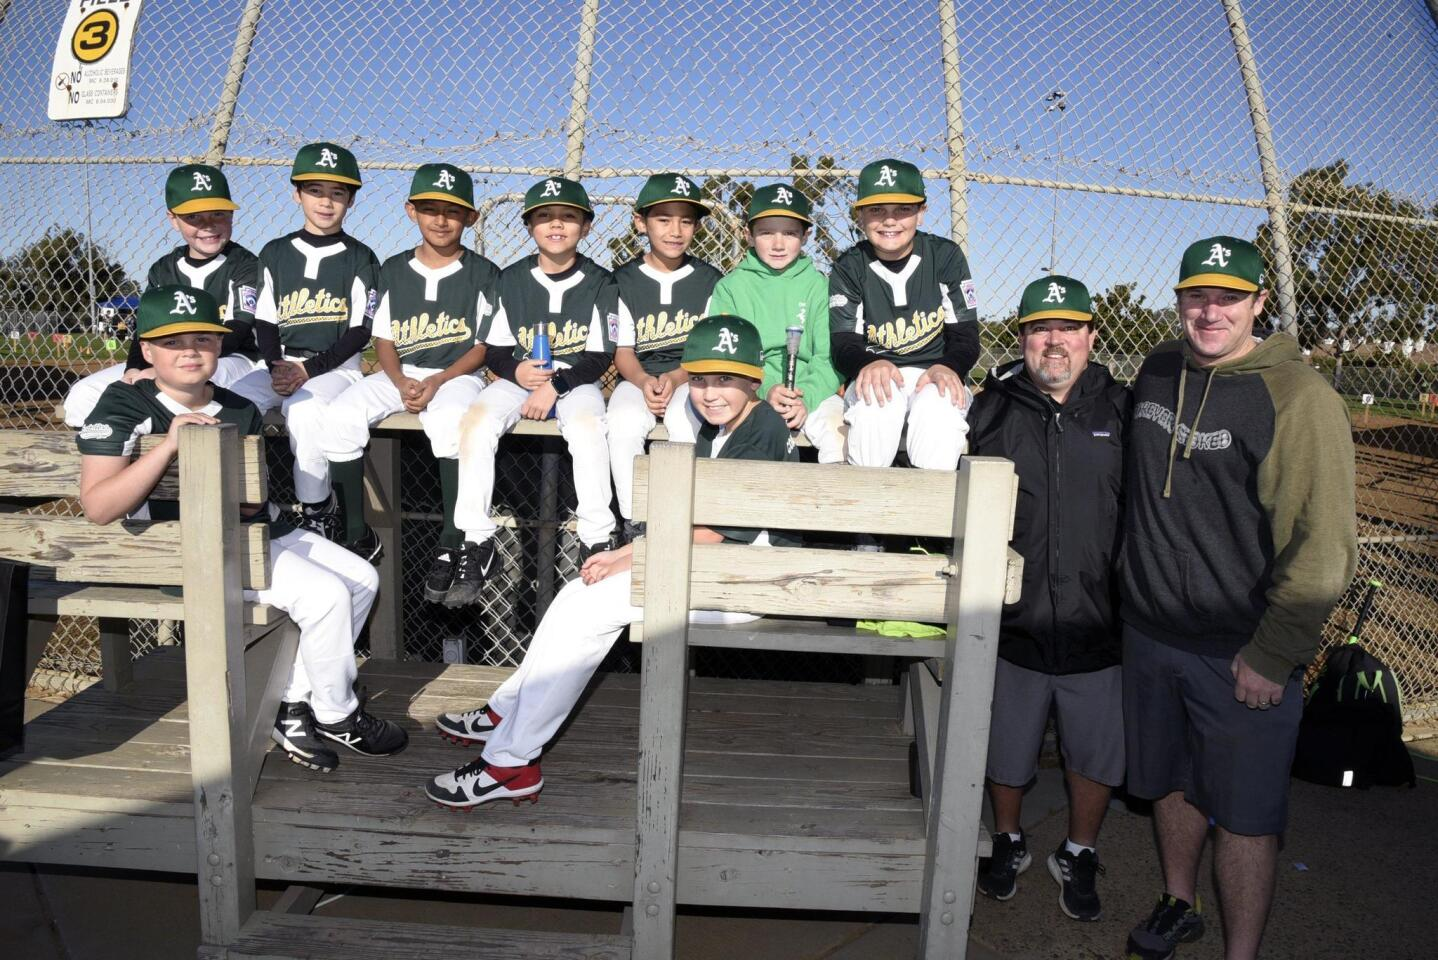 Encinitas Little League Opening Day